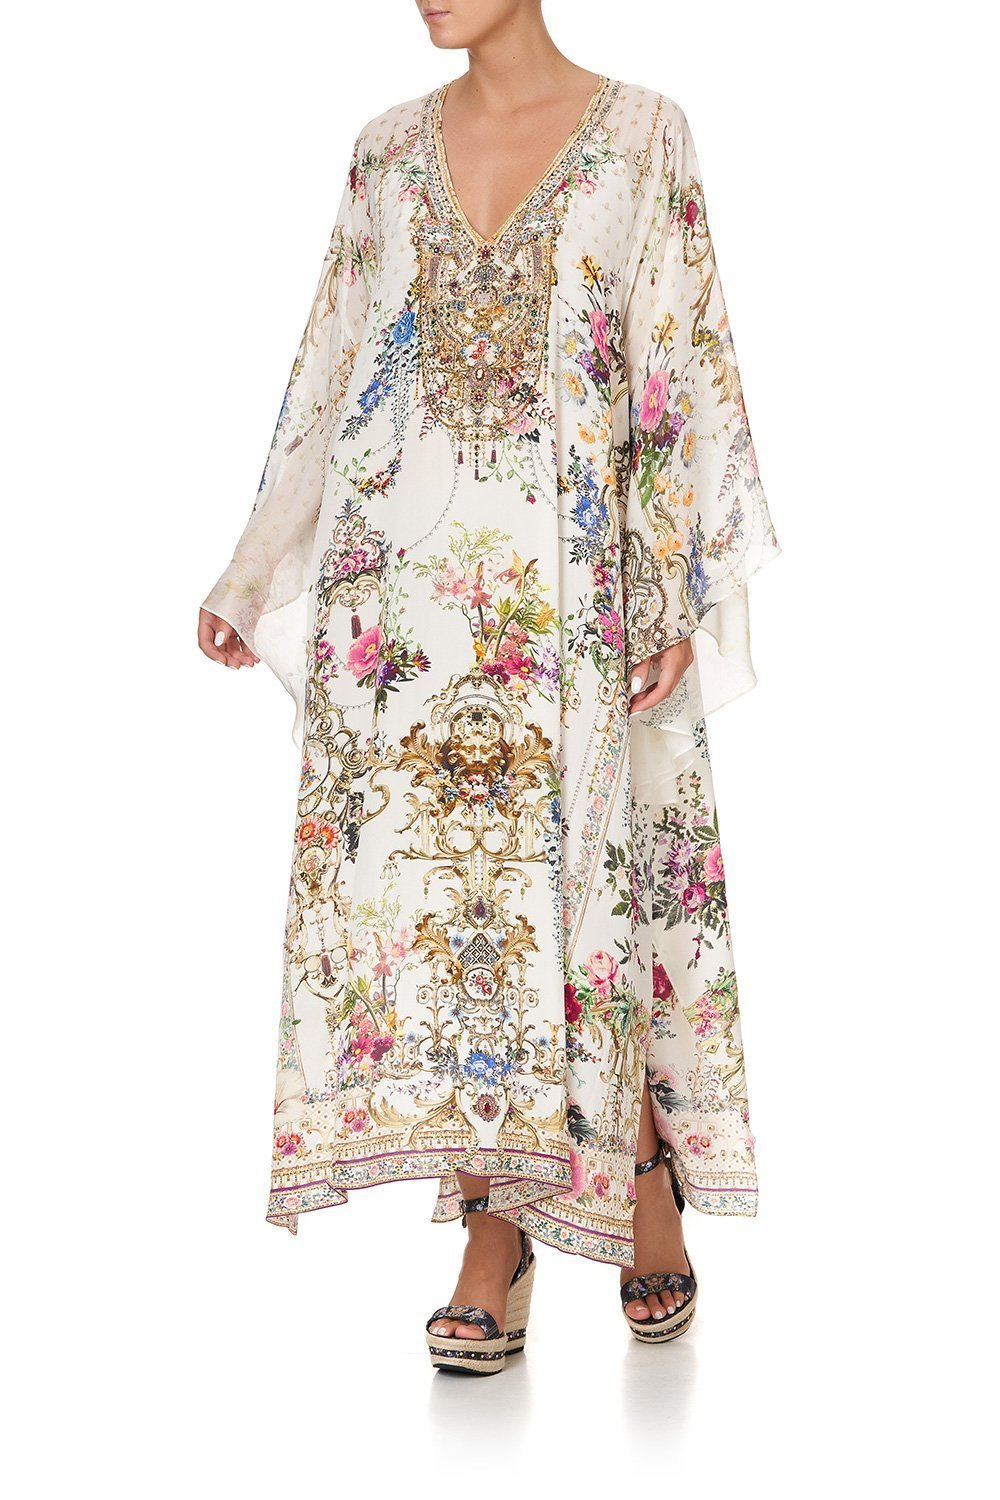 CAMILLA_00011115_BY_THE_MEADOW_LONG_RAGLAN_SLEEVE_FLARED_KAFTAN_2_1024x1024@2x